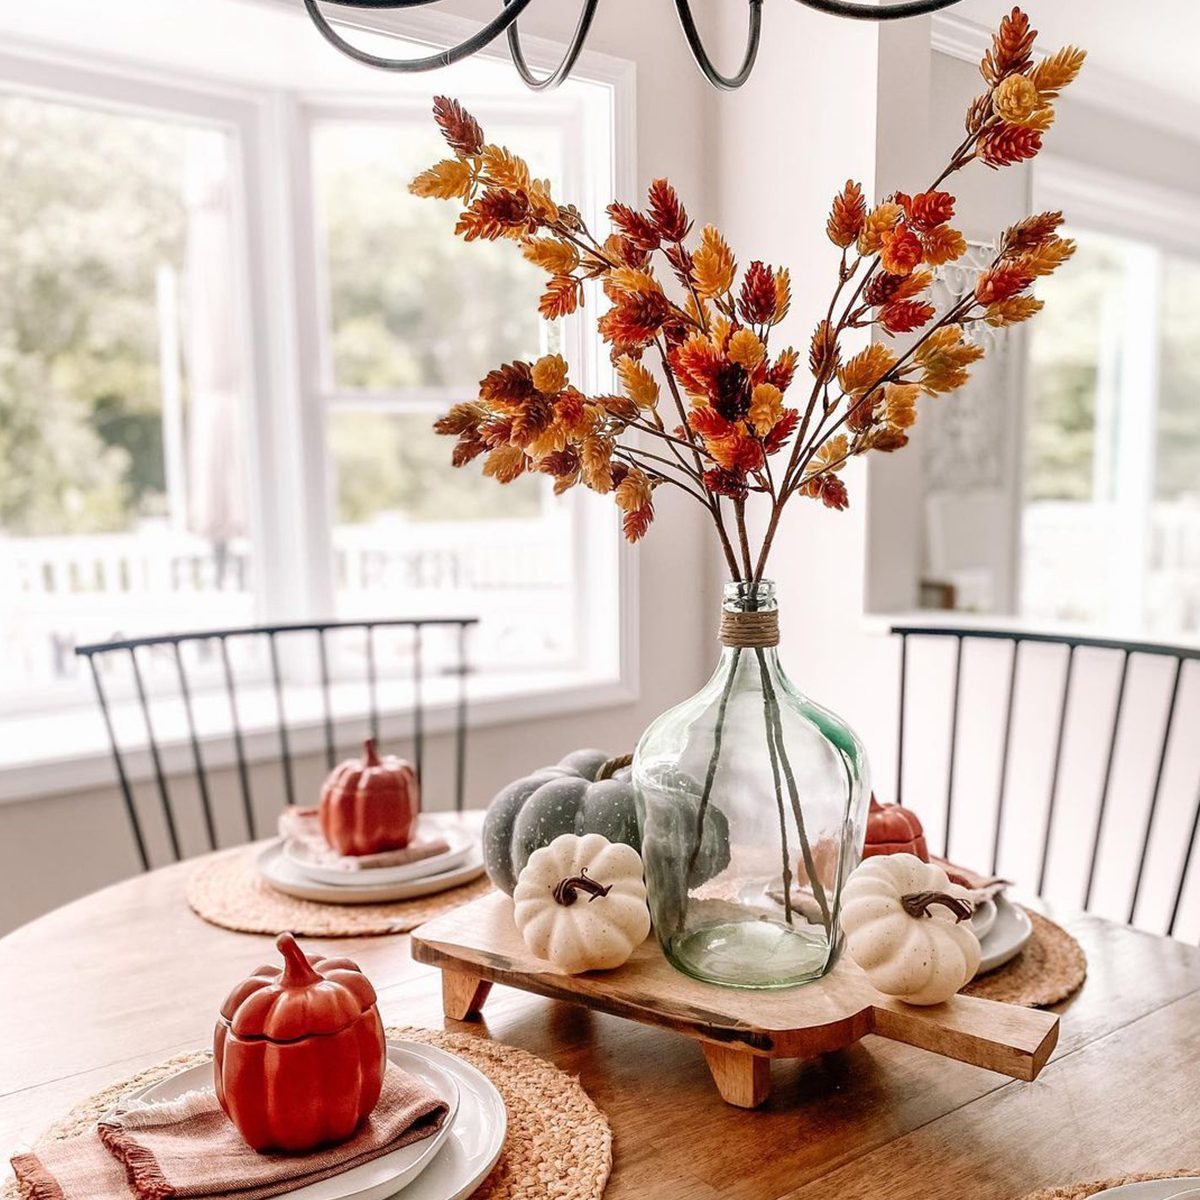 20 Fall Centerpieces for the Table That You Can DIY [with Photos]